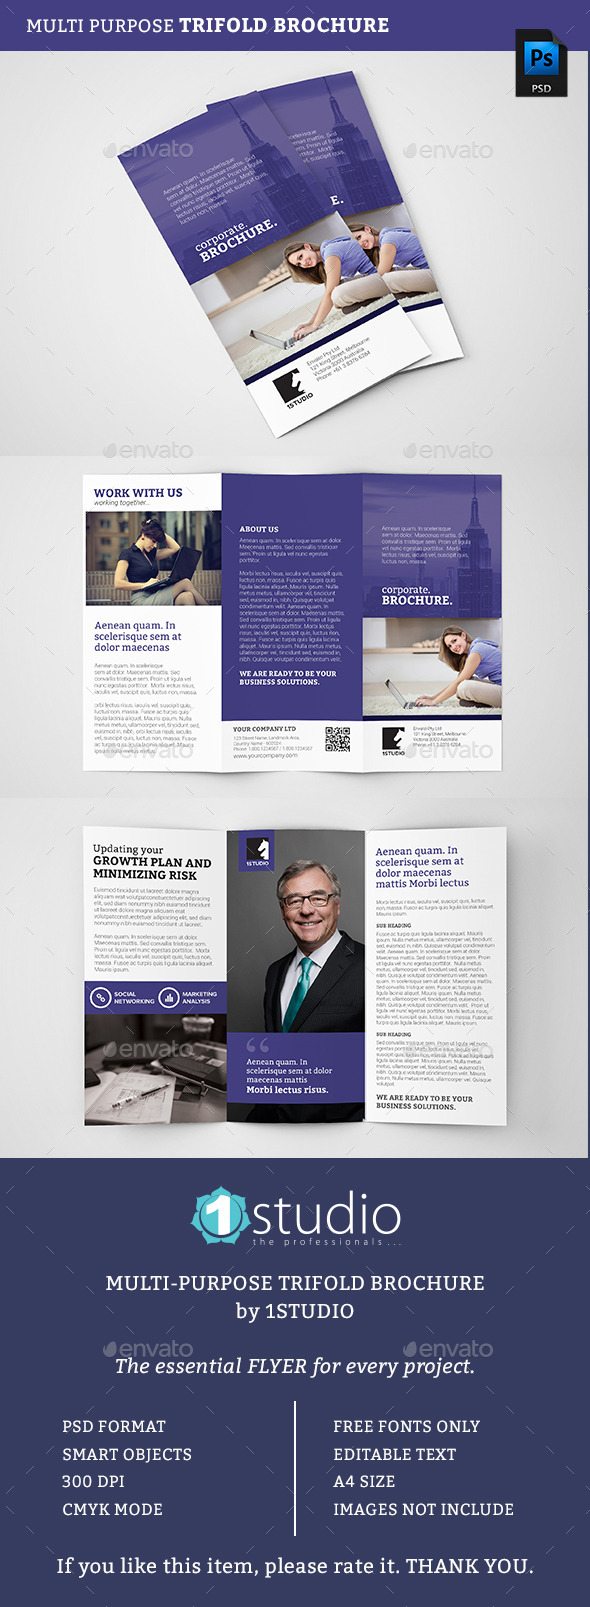 Corporate Trifold Brochure 05